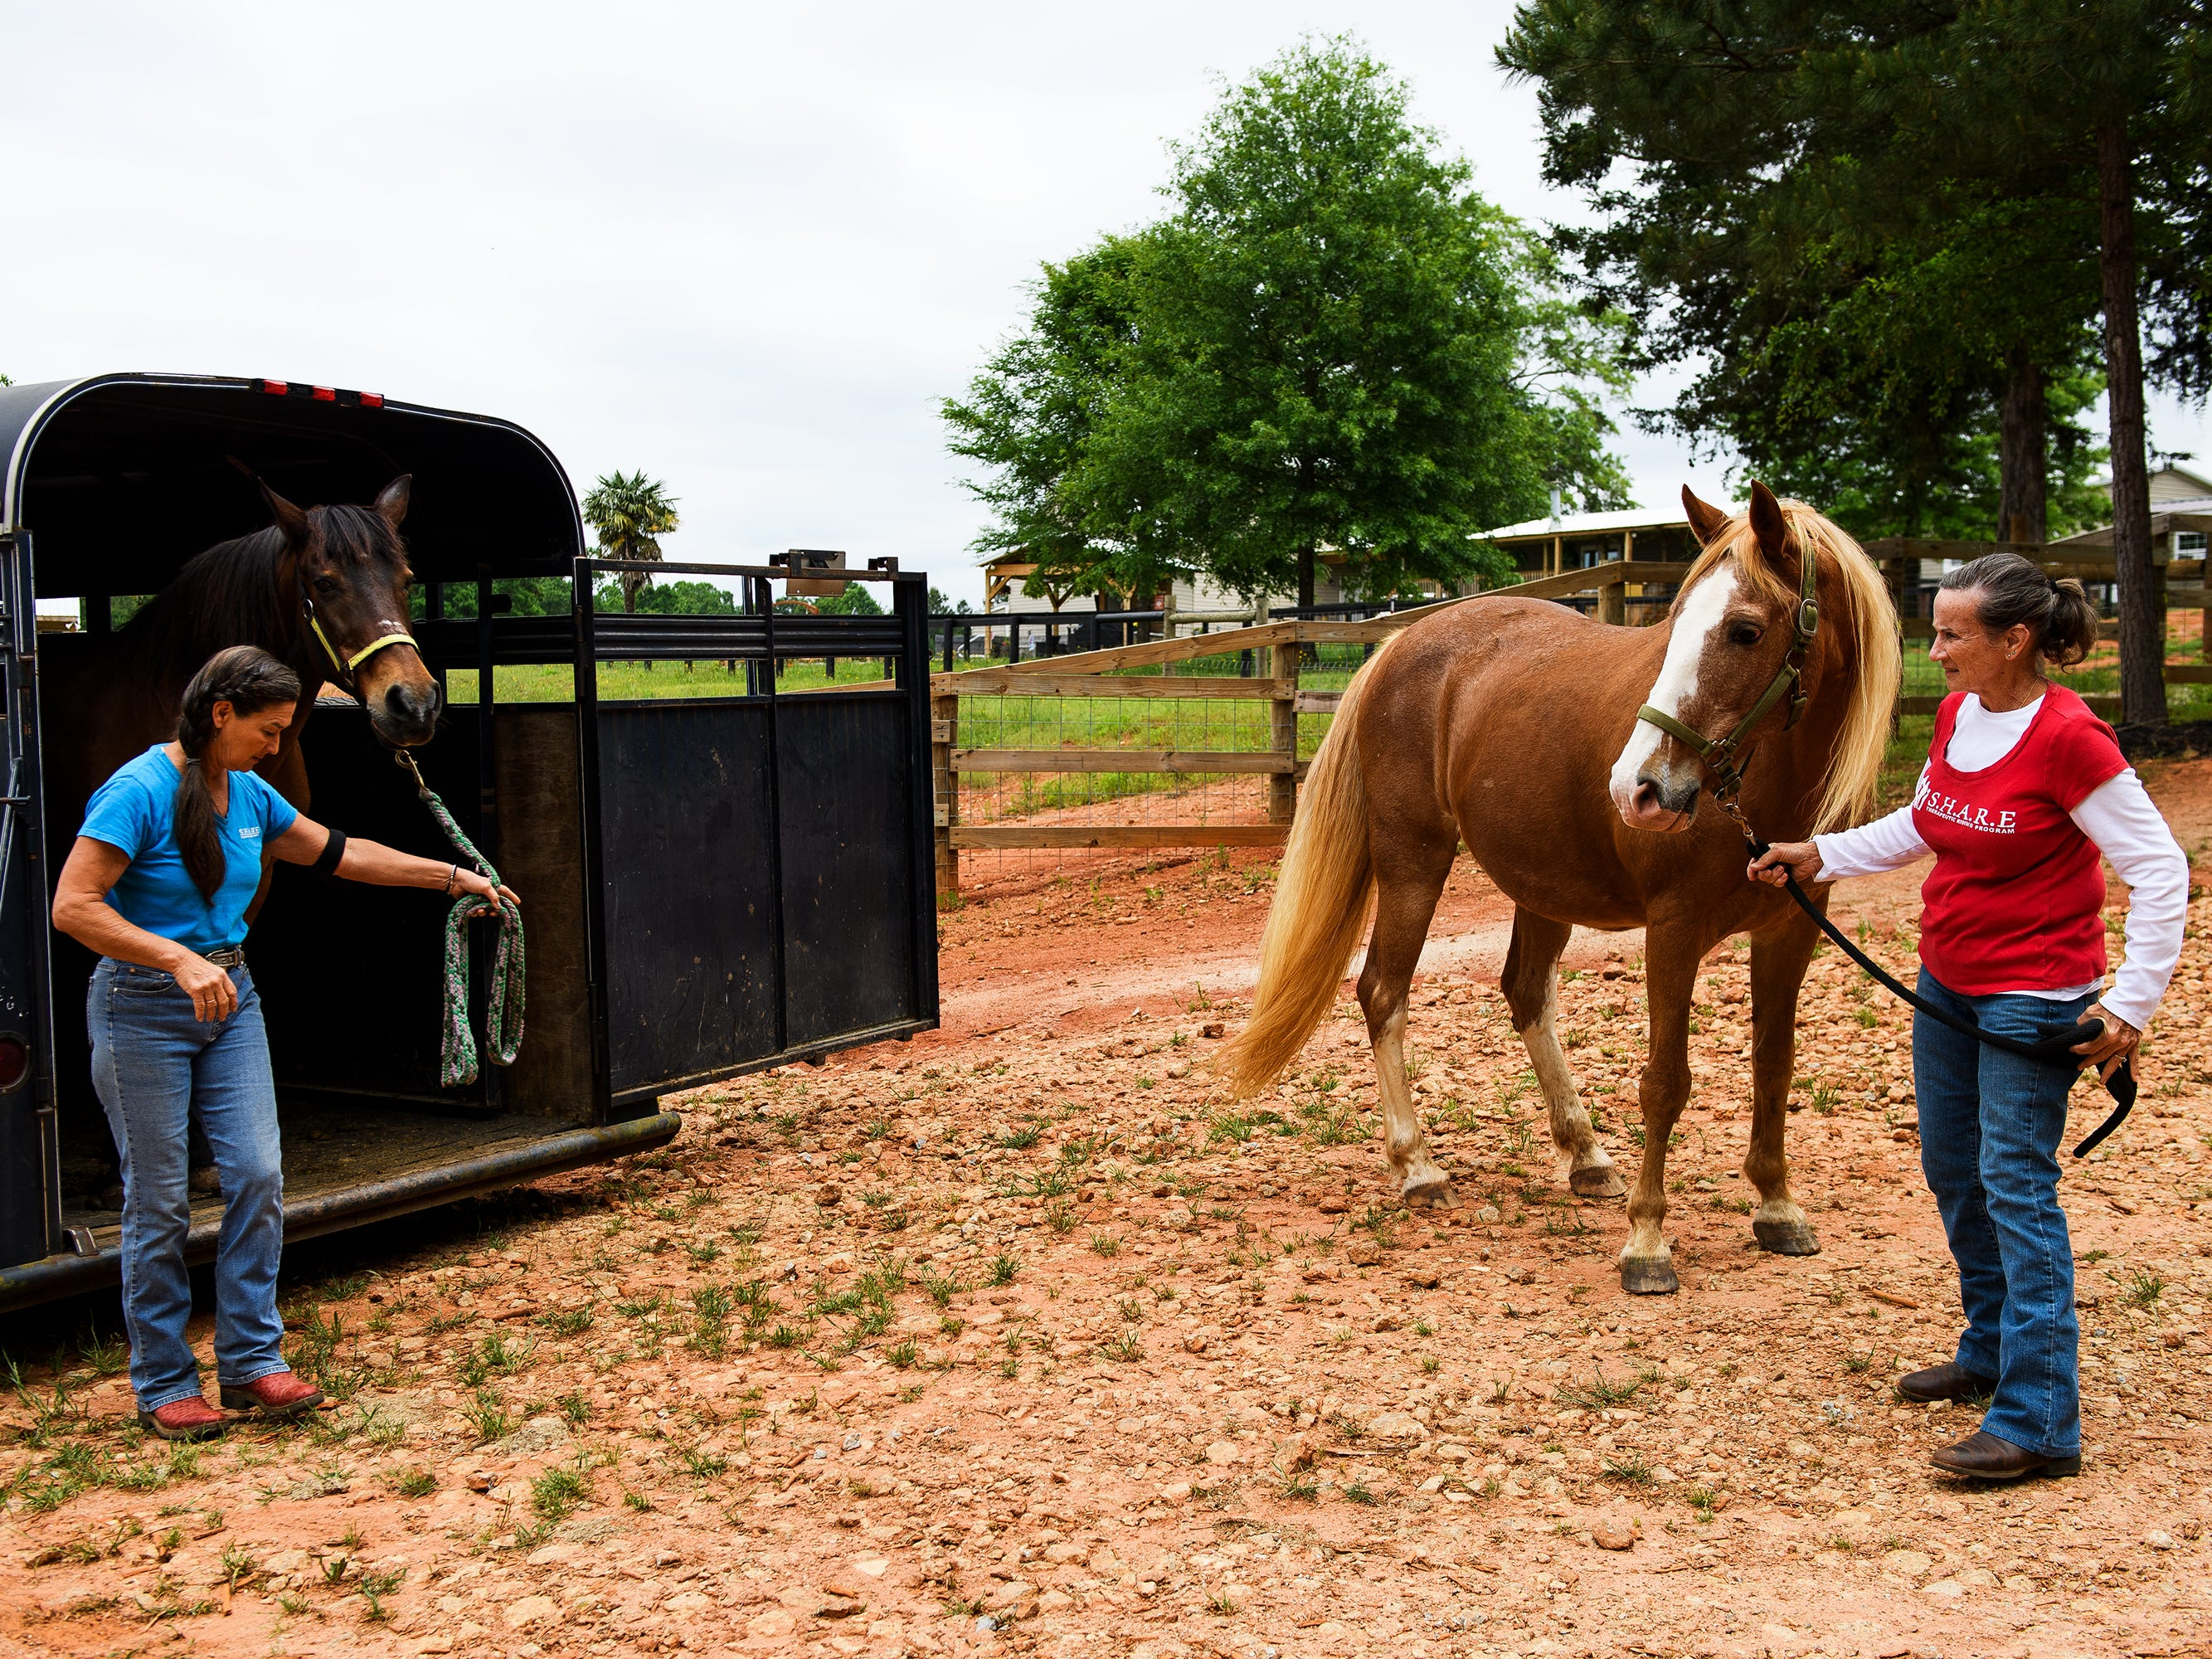 Lisa Hartman and volunteer Darlene Whitmore move horses from the trailer as they prepare for a S.H.A.R.E. riding lesson at J Rest Farm Tuesday, May 7, 2019.